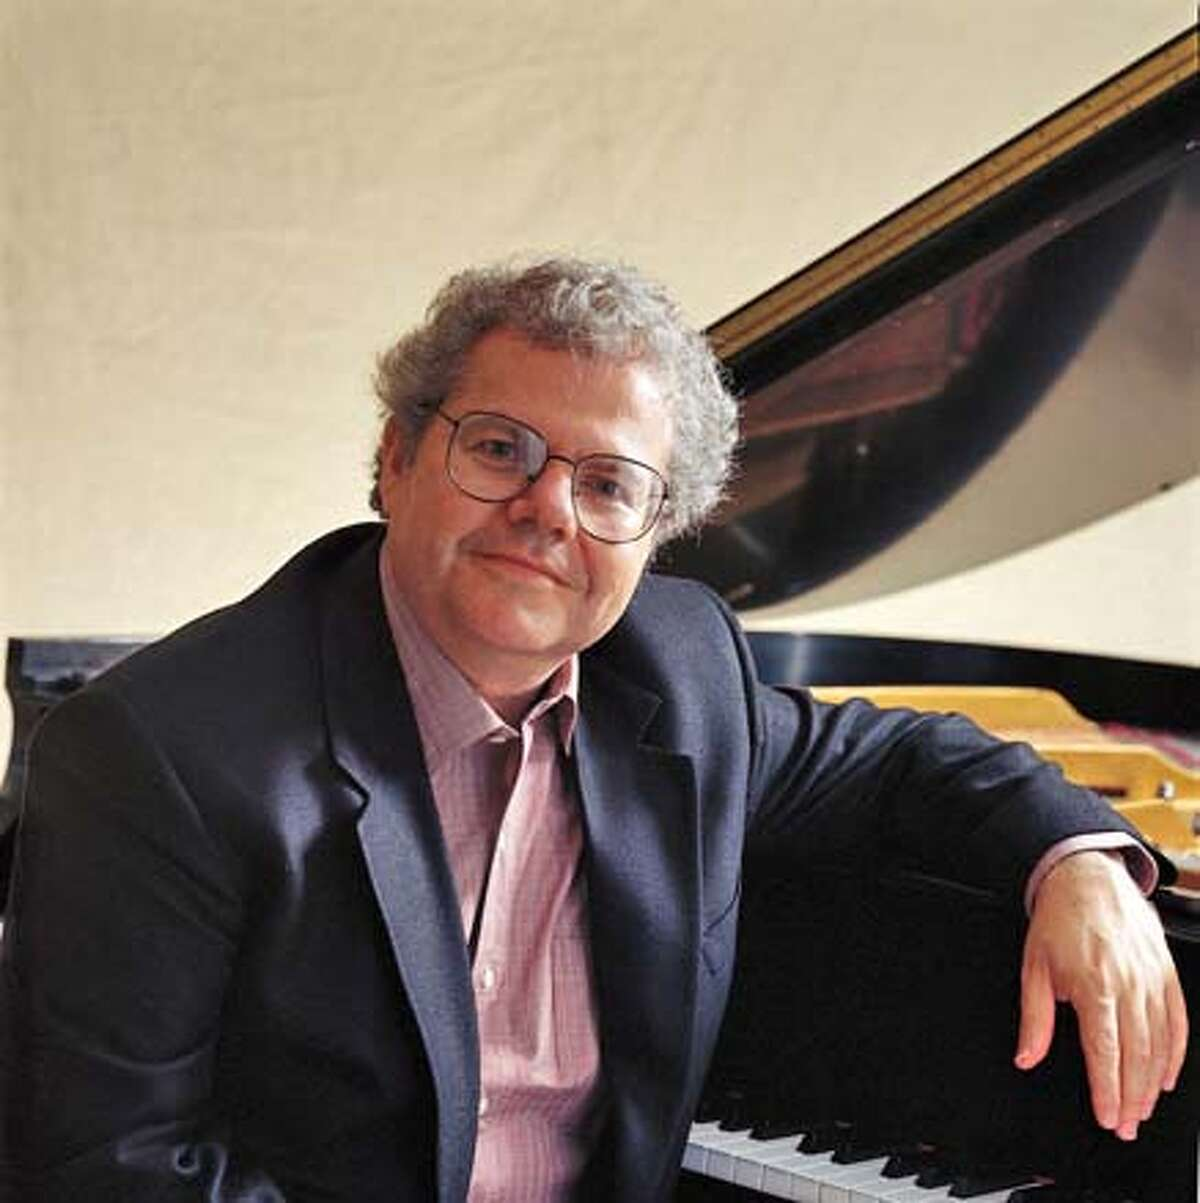 Pianist Emanuel Ax plays with nimble, efficient classicism.